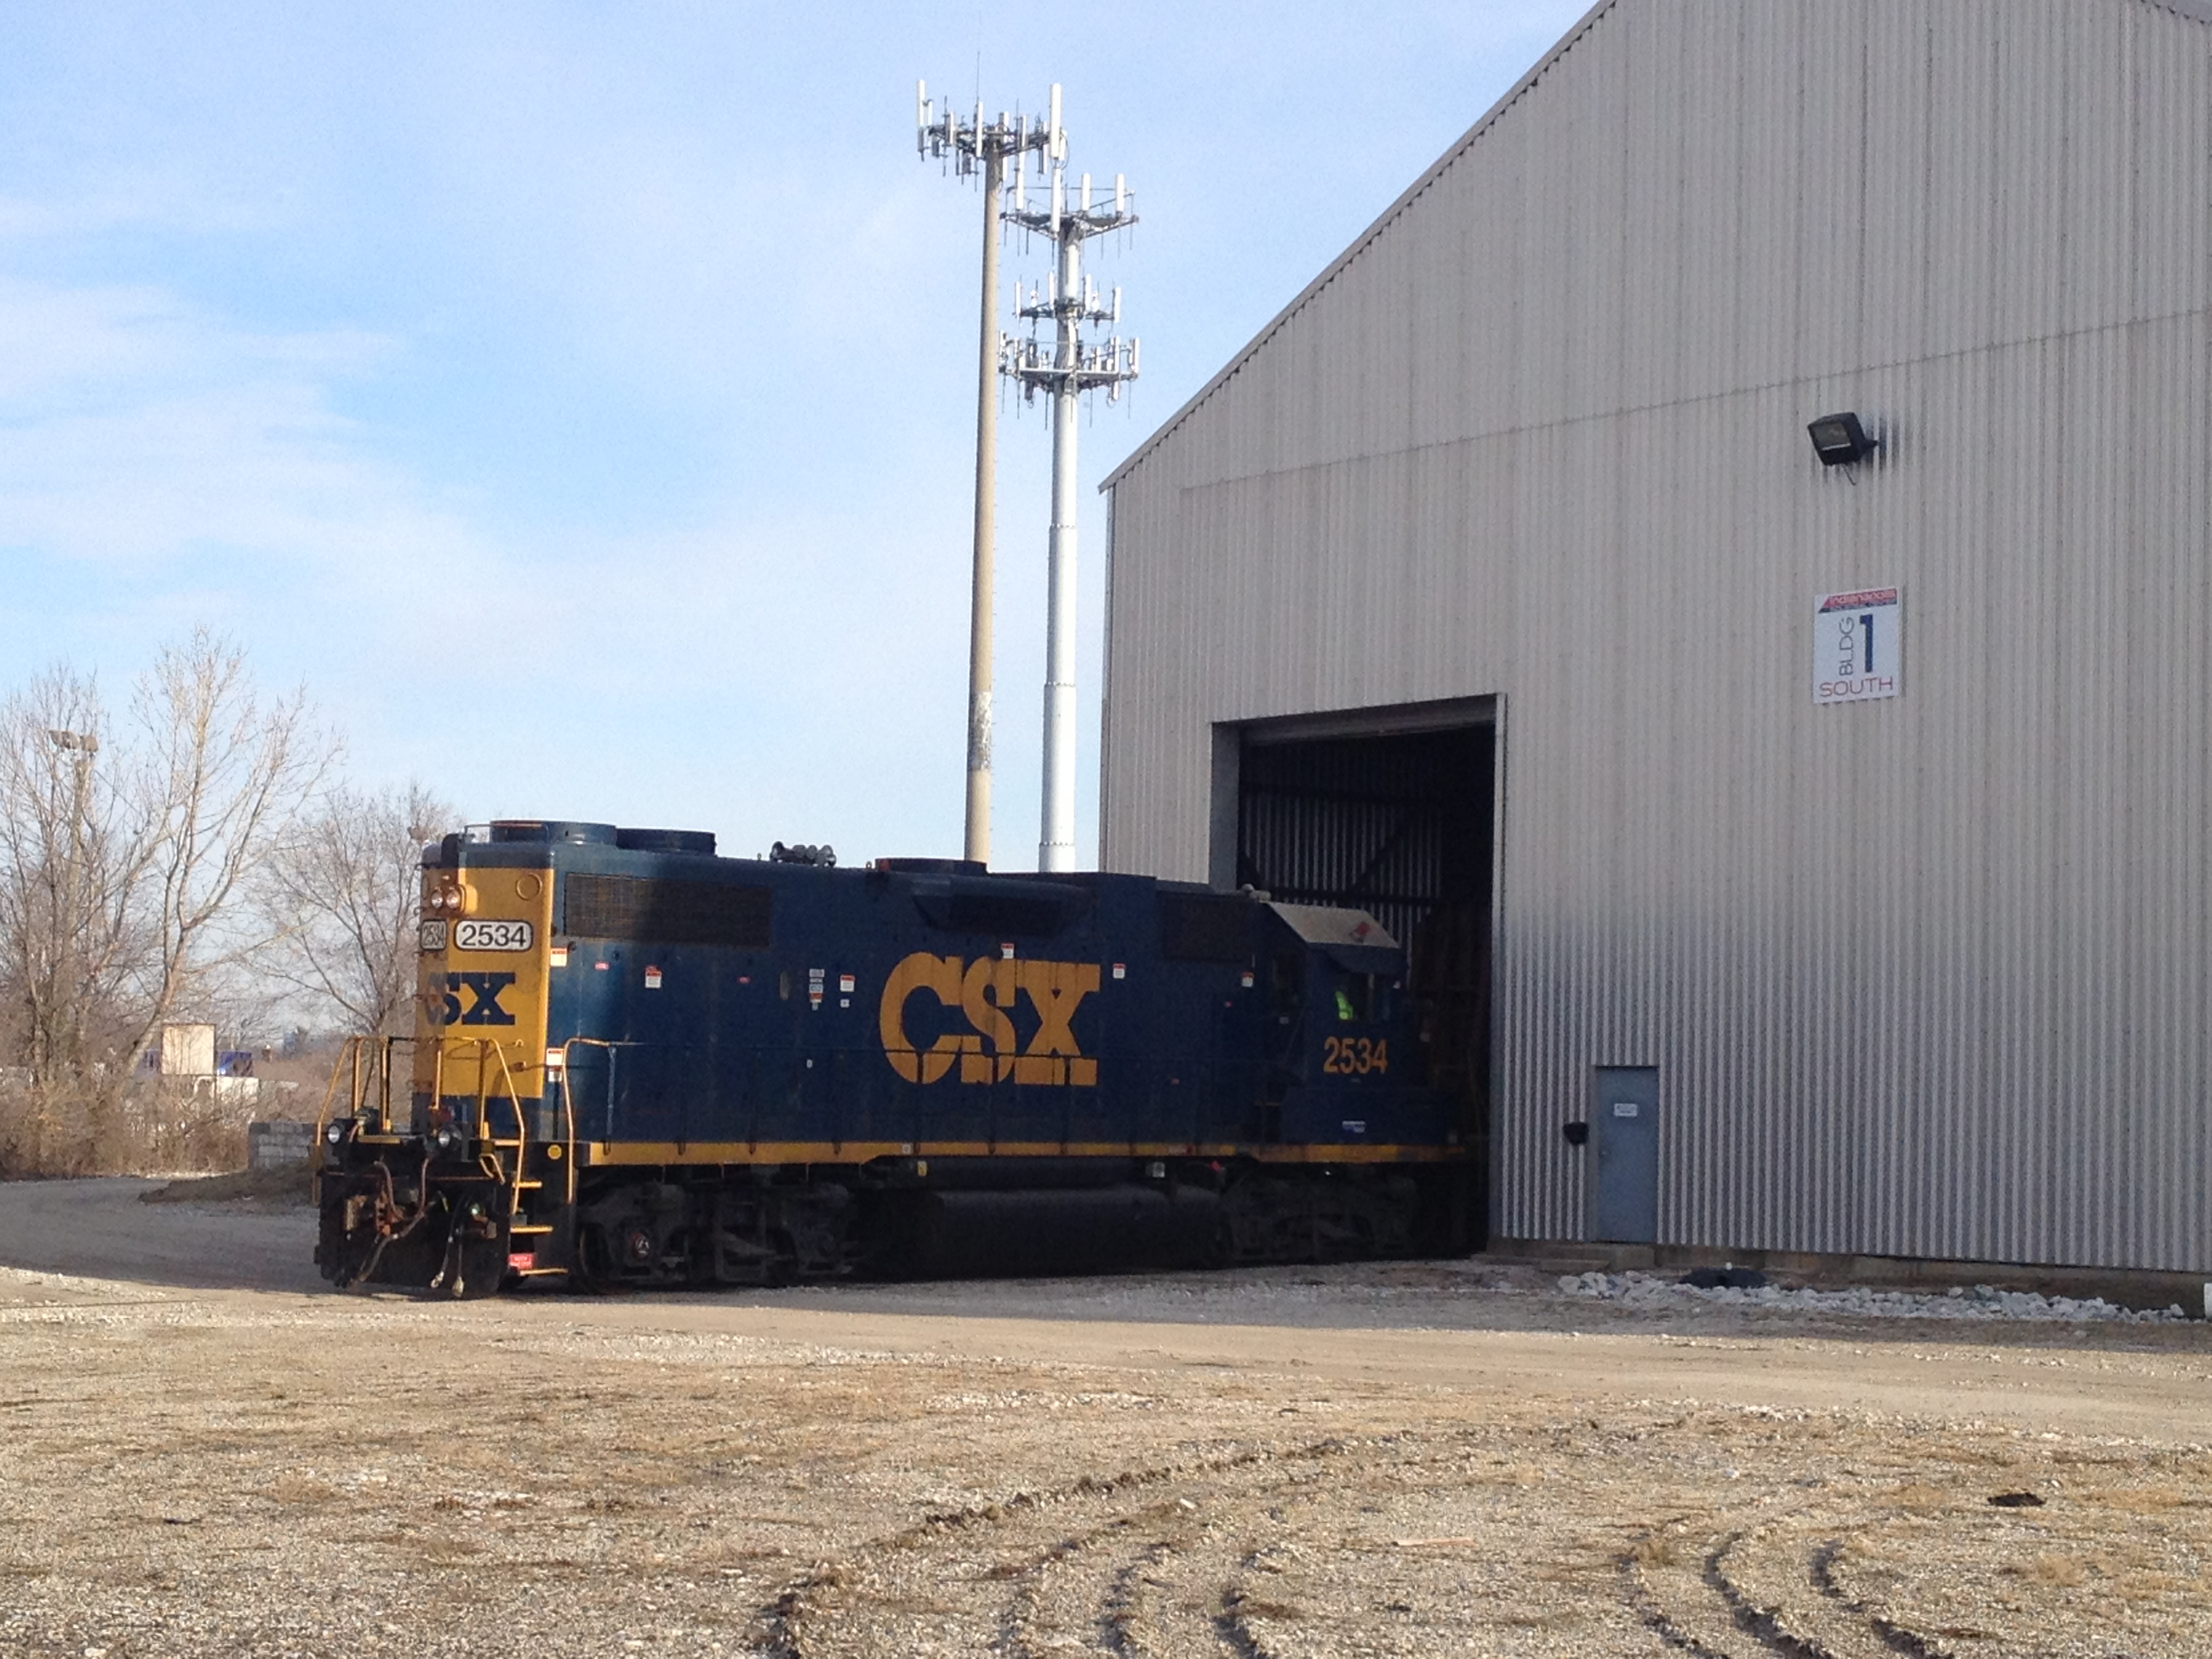 CSX Providing Service to Indoor Siding in Building 1 at the Indianapolis Industrial Center